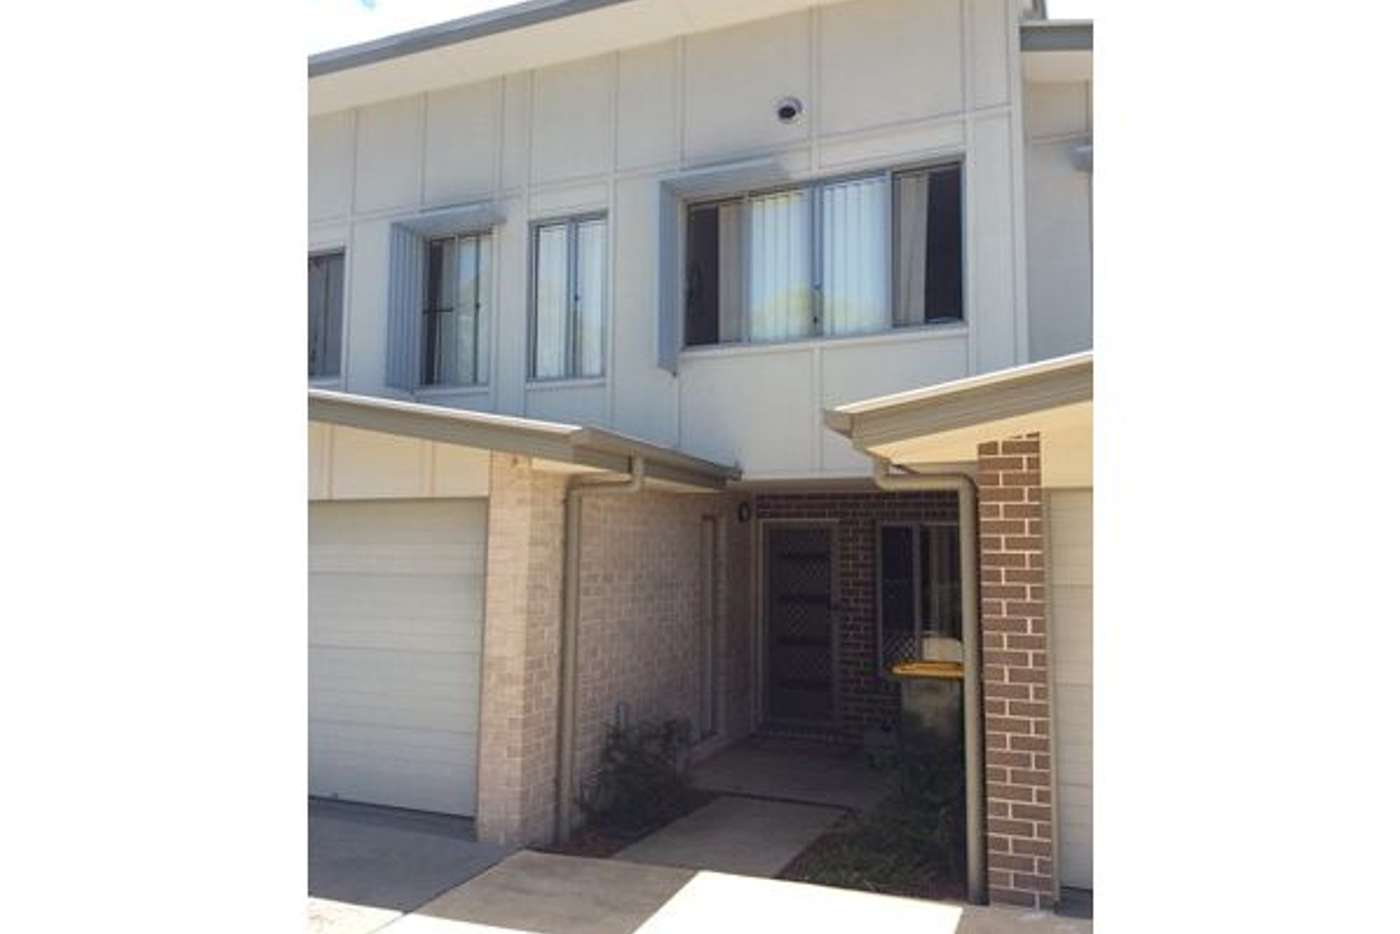 Main view of Homely house listing, 72 Road, Deception Bay QLD 4508